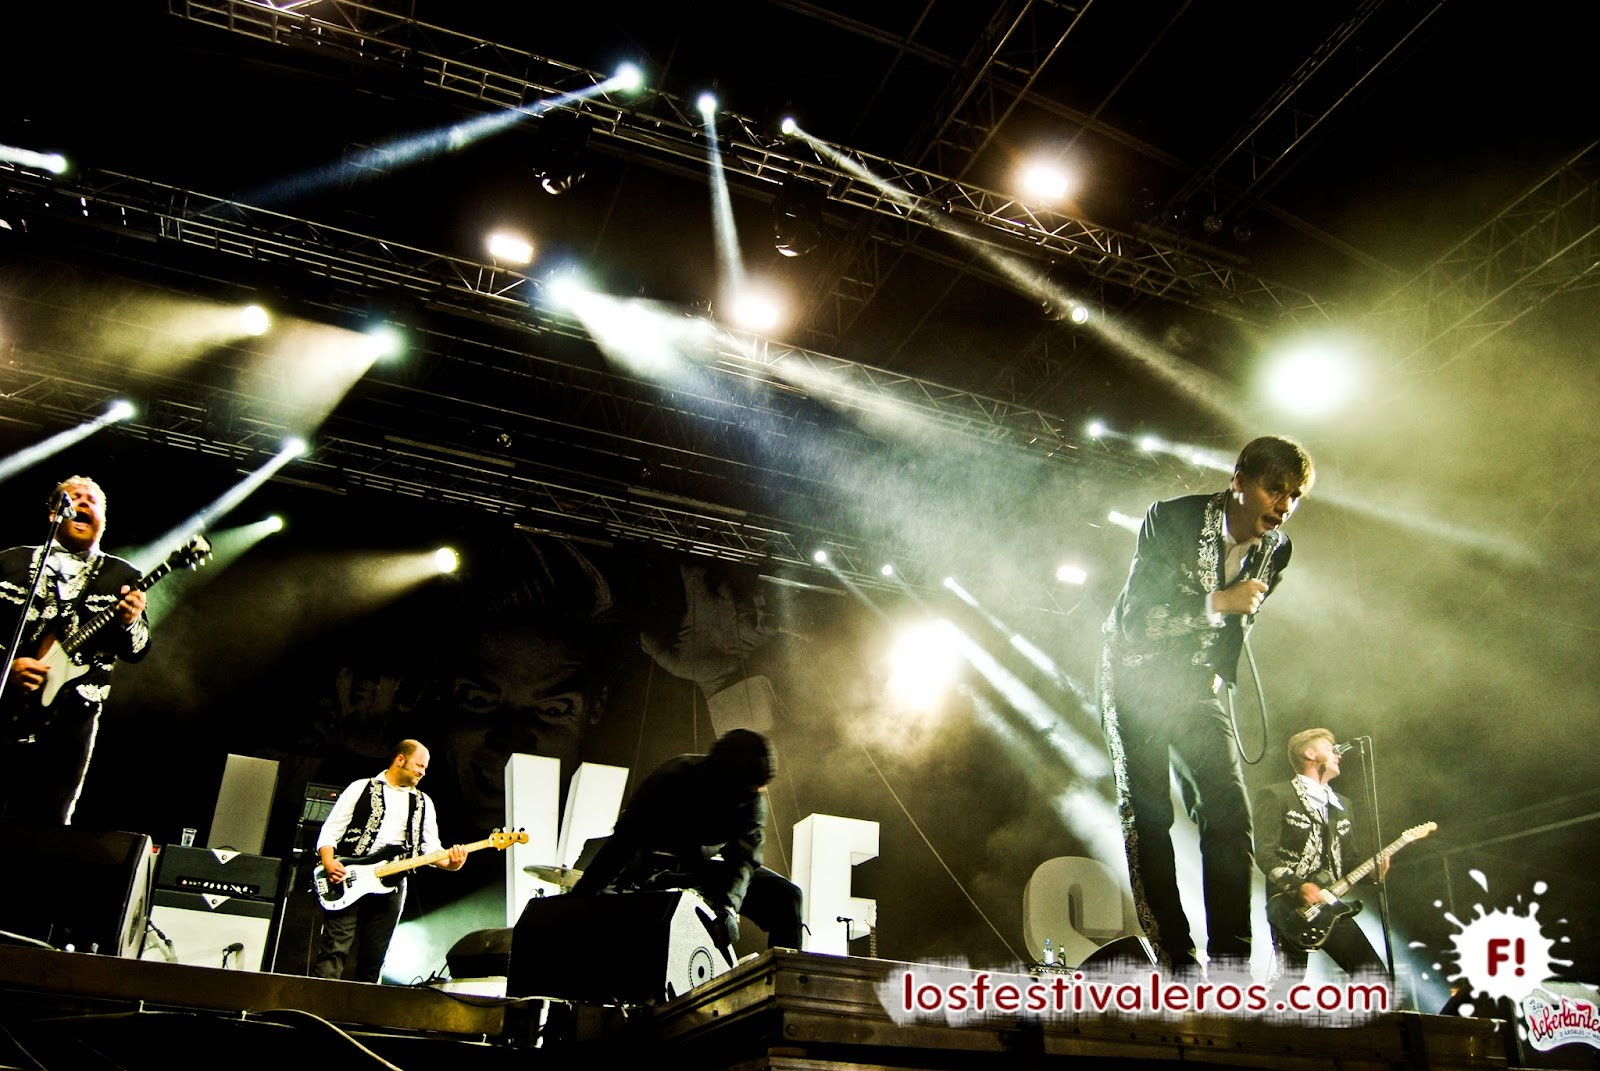 Low Festival, 2014, The Hives, Concierto